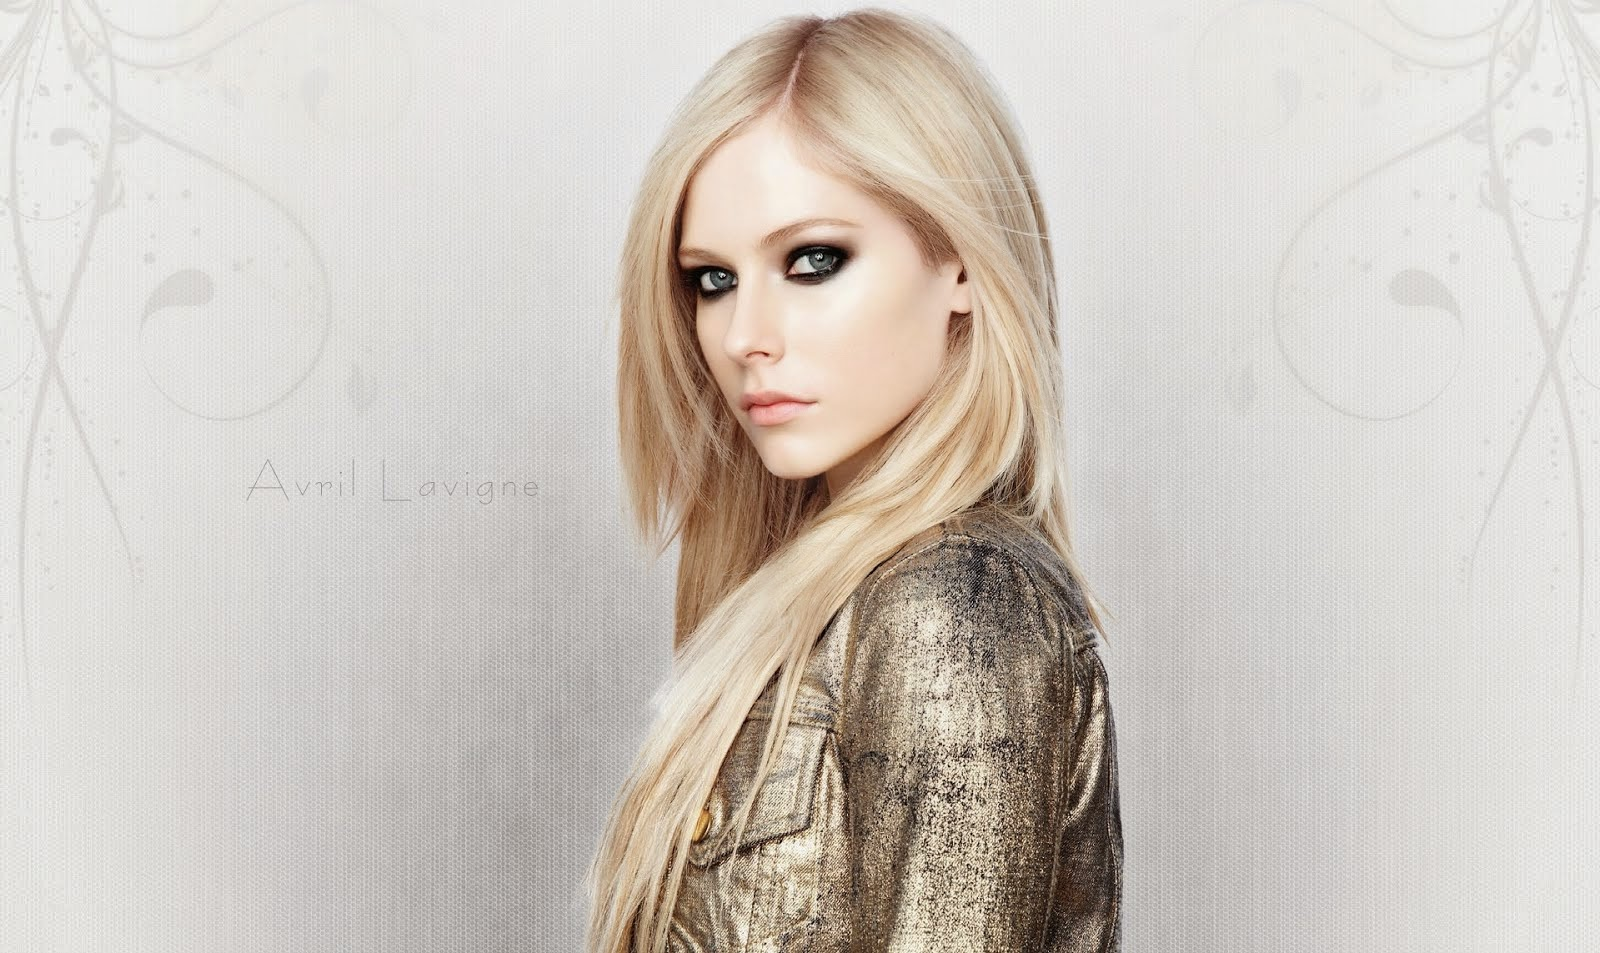 Avril Lavigne 1 Wallpapers: Download Free High Definition